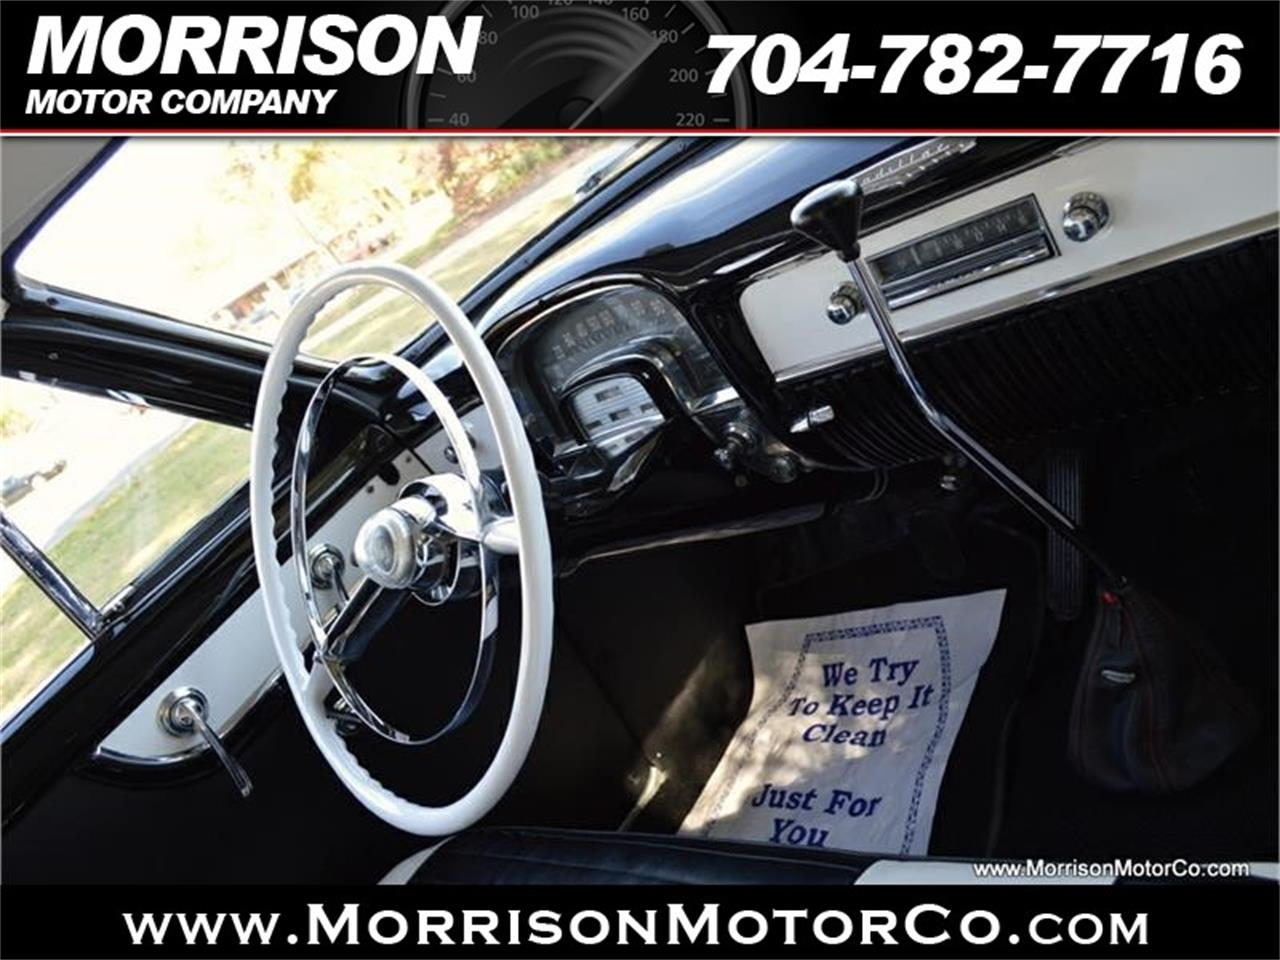 Large Picture of 1951 Cadillac DeVille - $19,900.00 Offered by Morrison Motor Company - MBTG